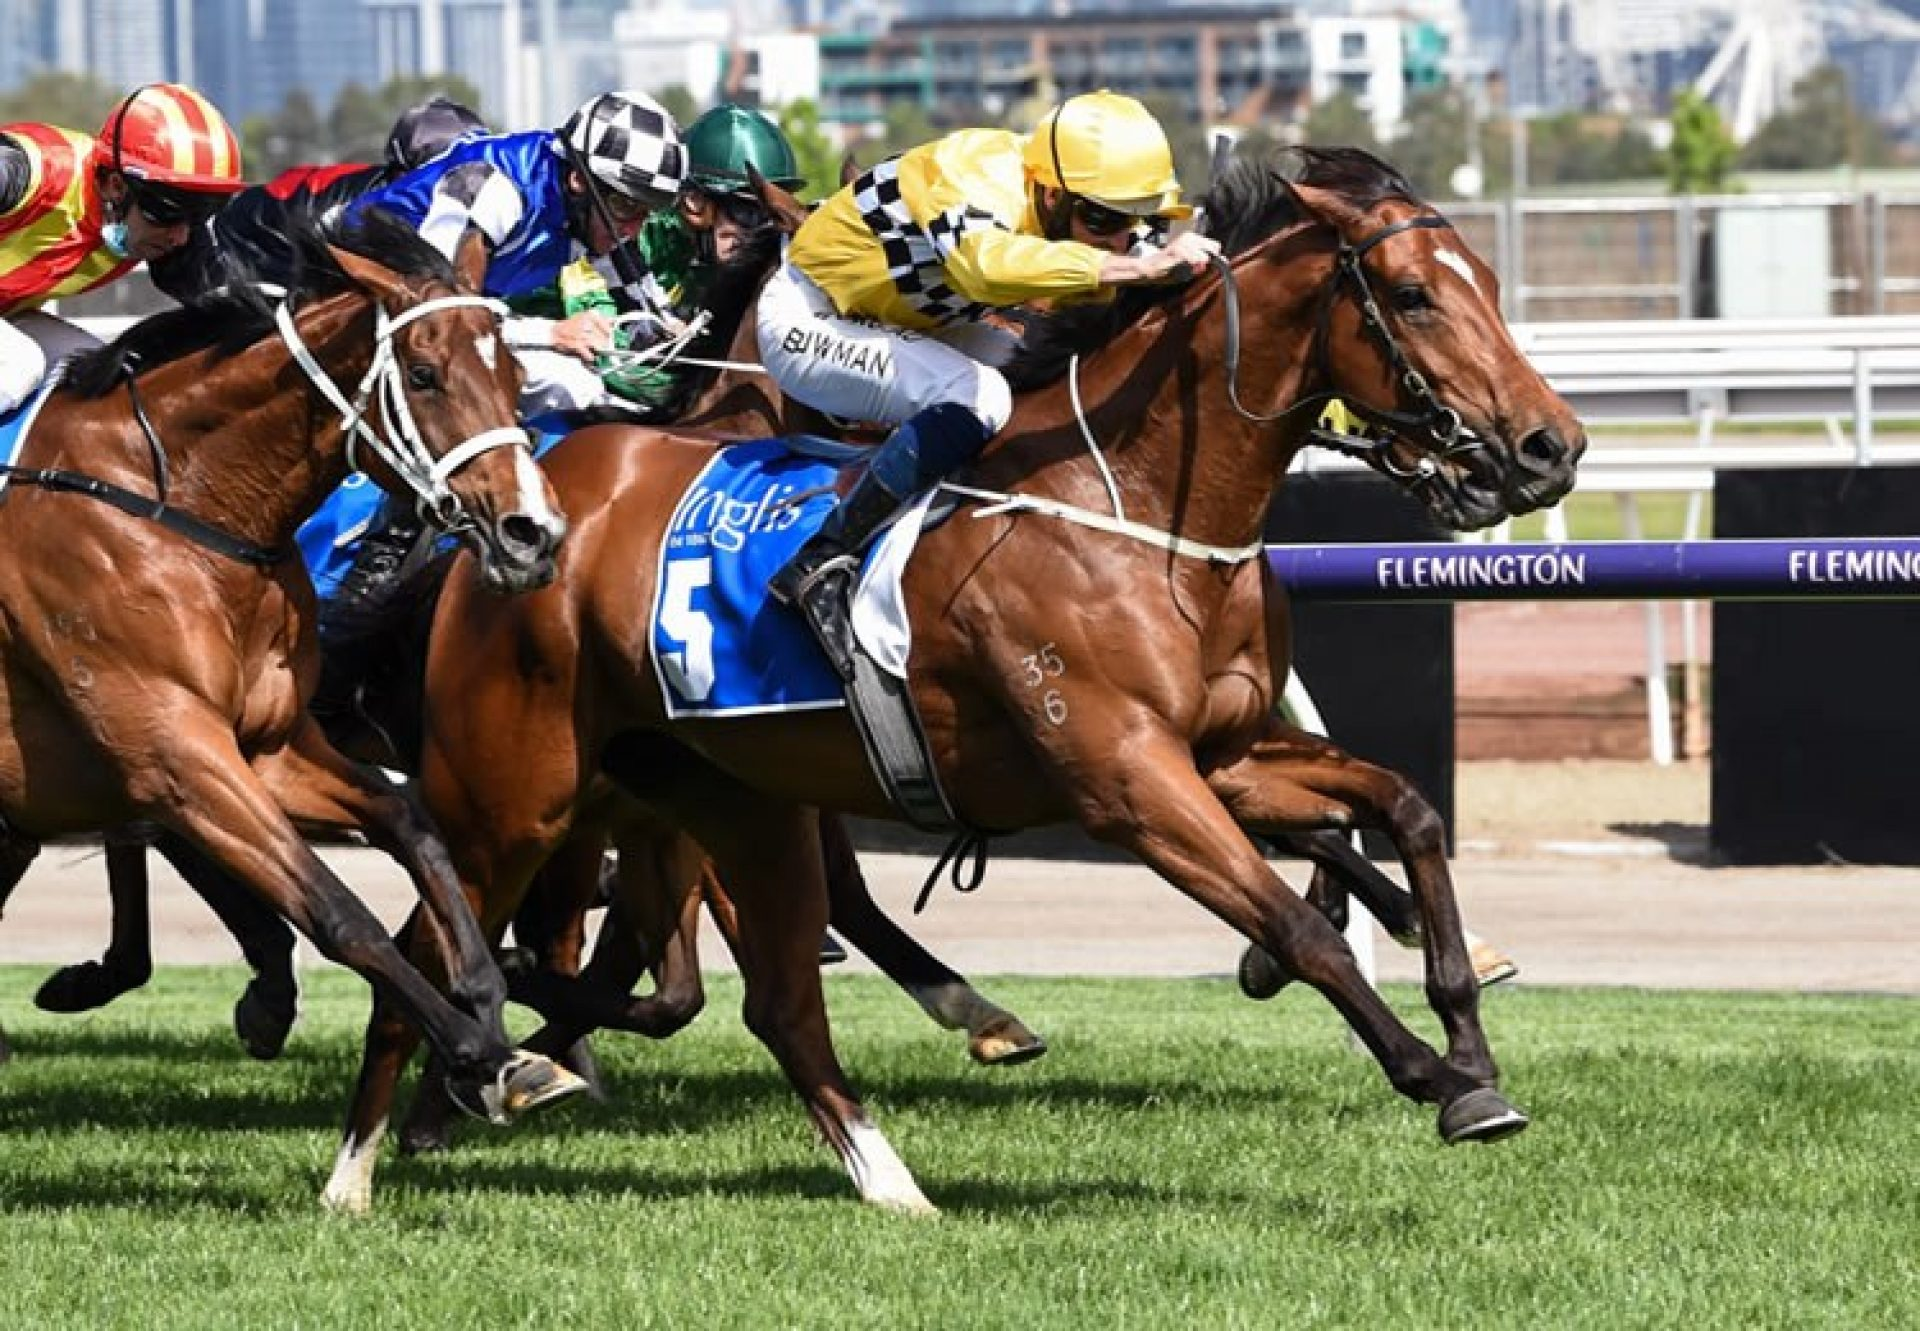 Rocha Clock (Pierro) winning the Inglis Bracelet at Flemington